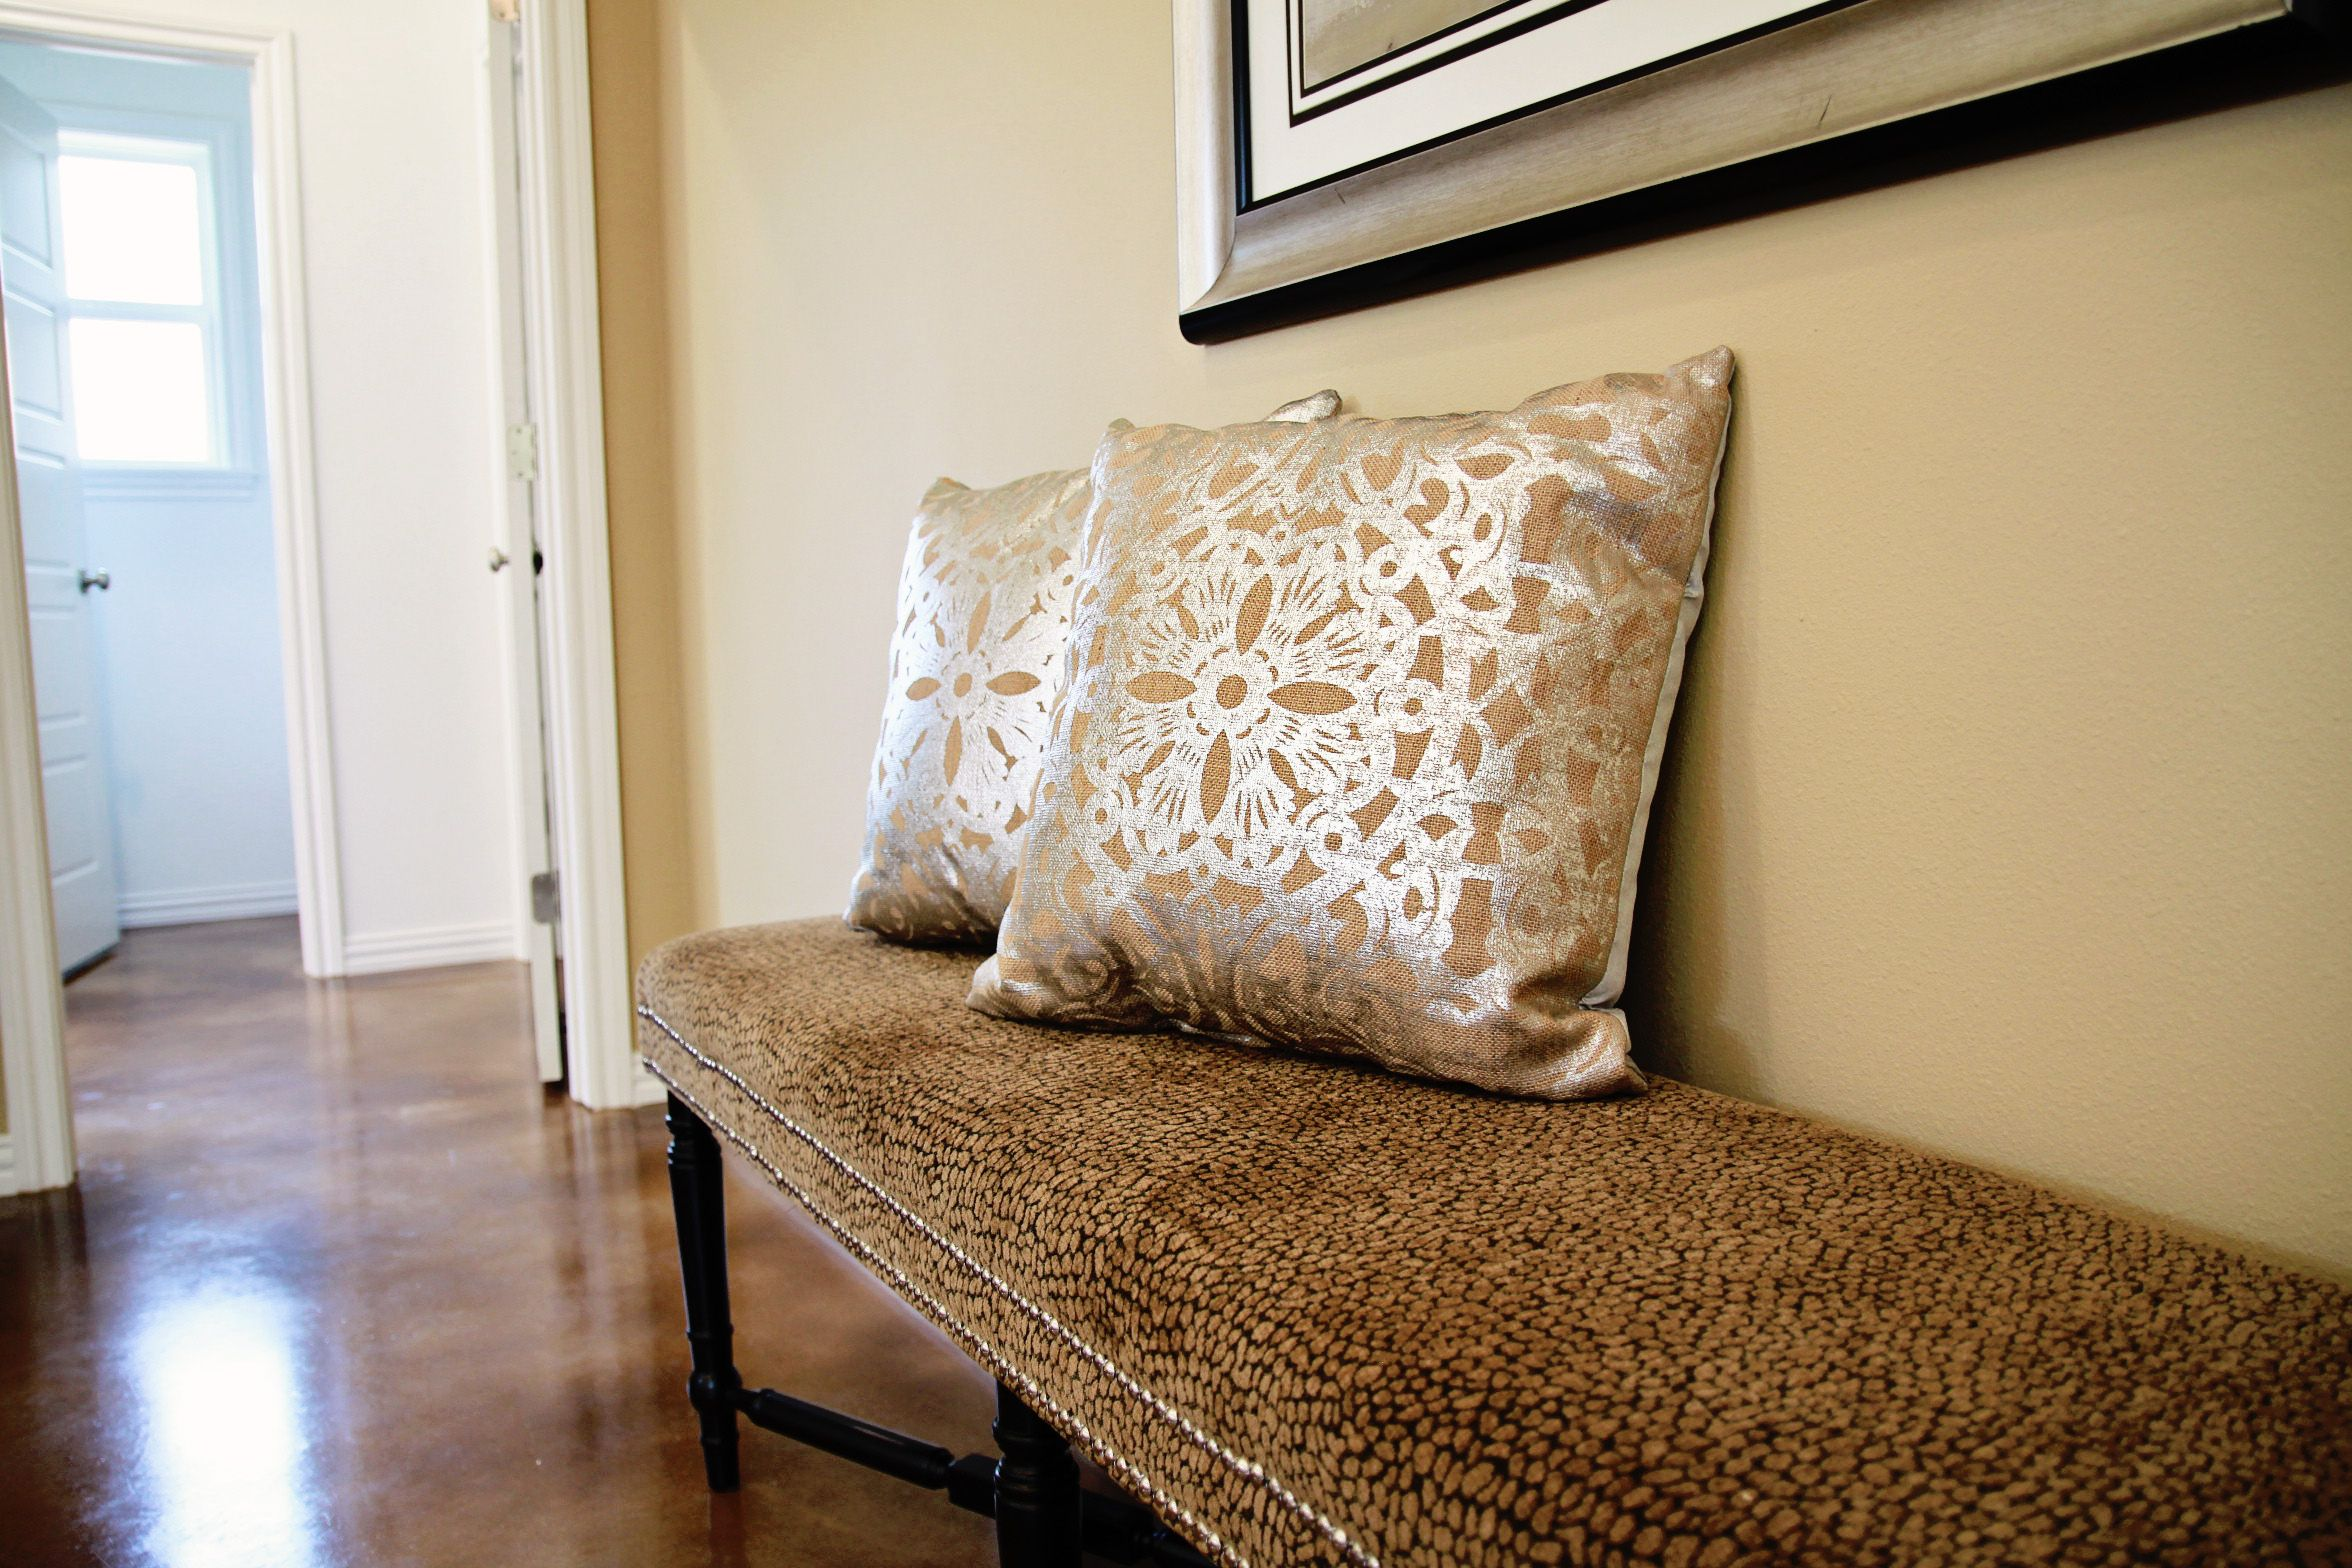 Shiny happy pillows in a lovely bedroom sitting area shimmer